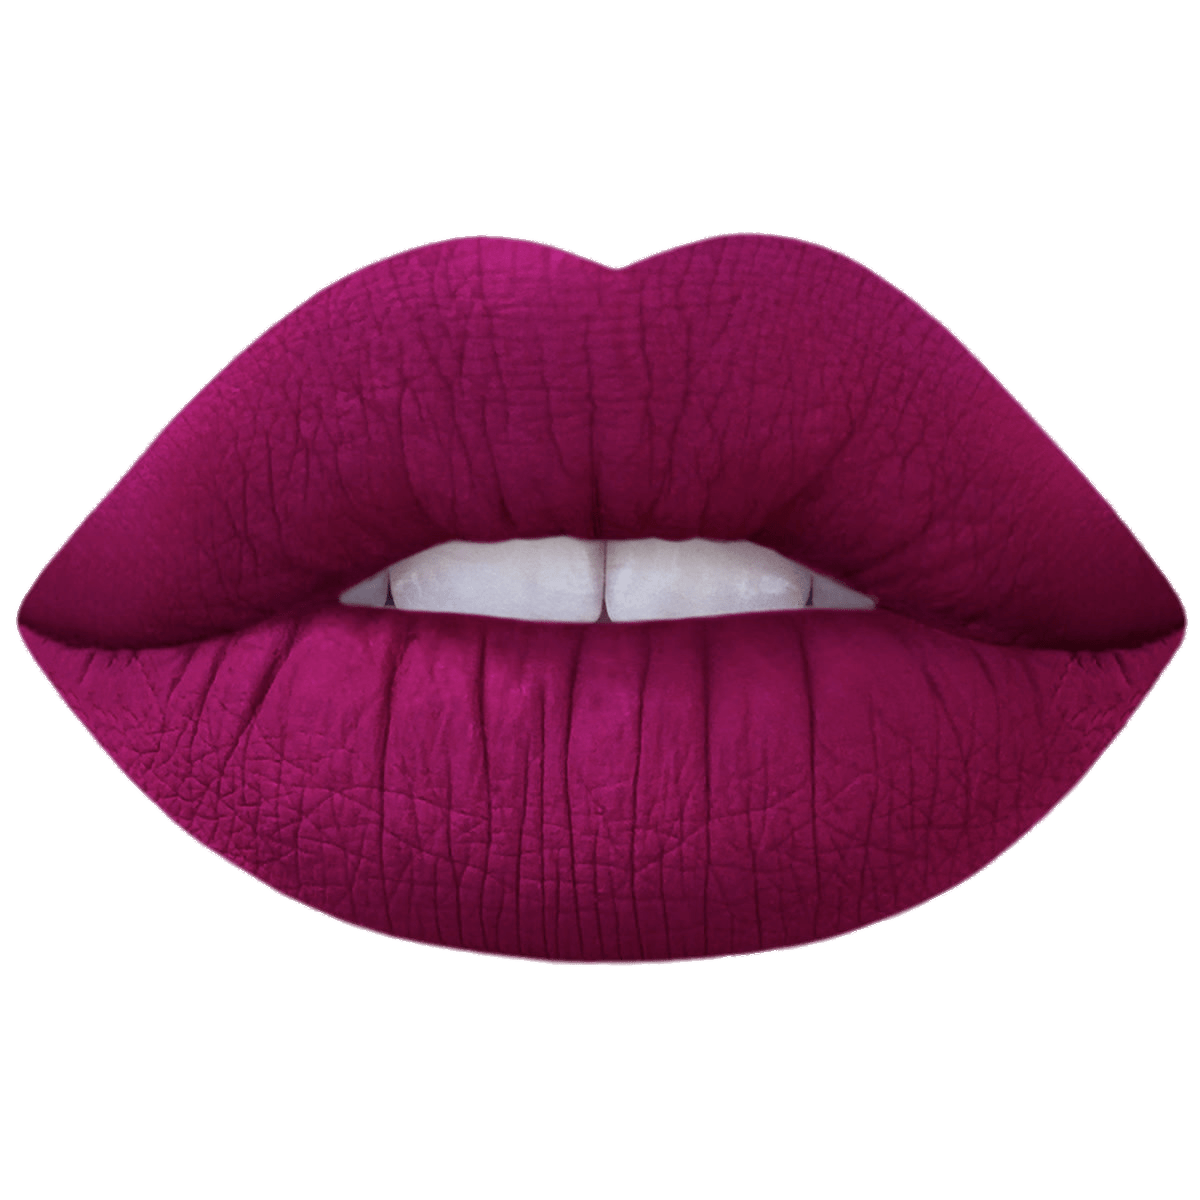 Lipstick lips png. Berry red on transparent